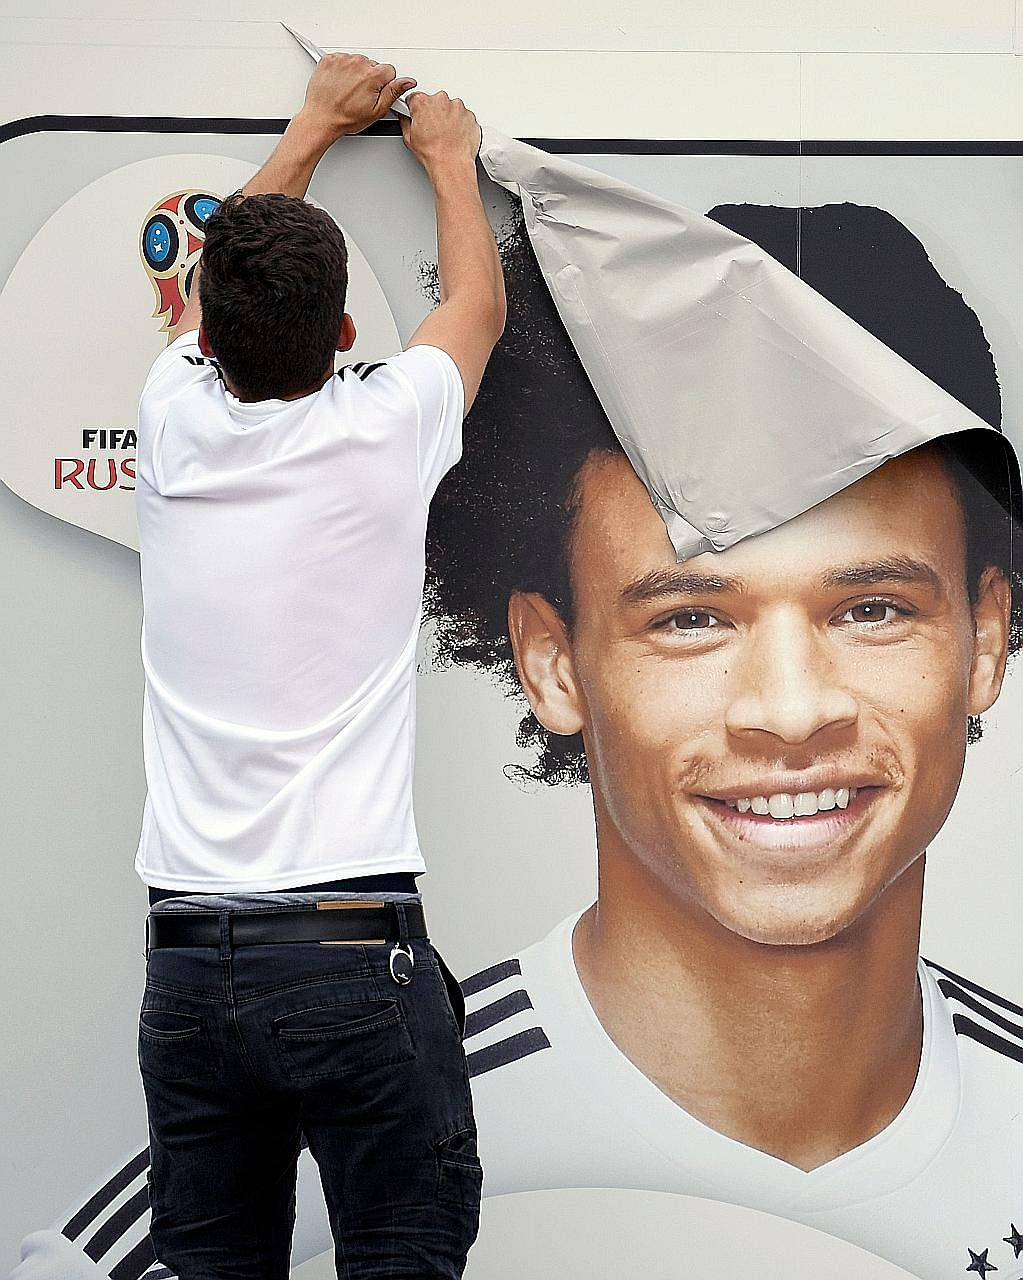 An employee removing a poster of Leroy Sane from the facade of the German Football Federation's museum in Dortmund yesterday. Coach Joachim Low dropped the Manchester City midfielder from his squad for the World Cup.